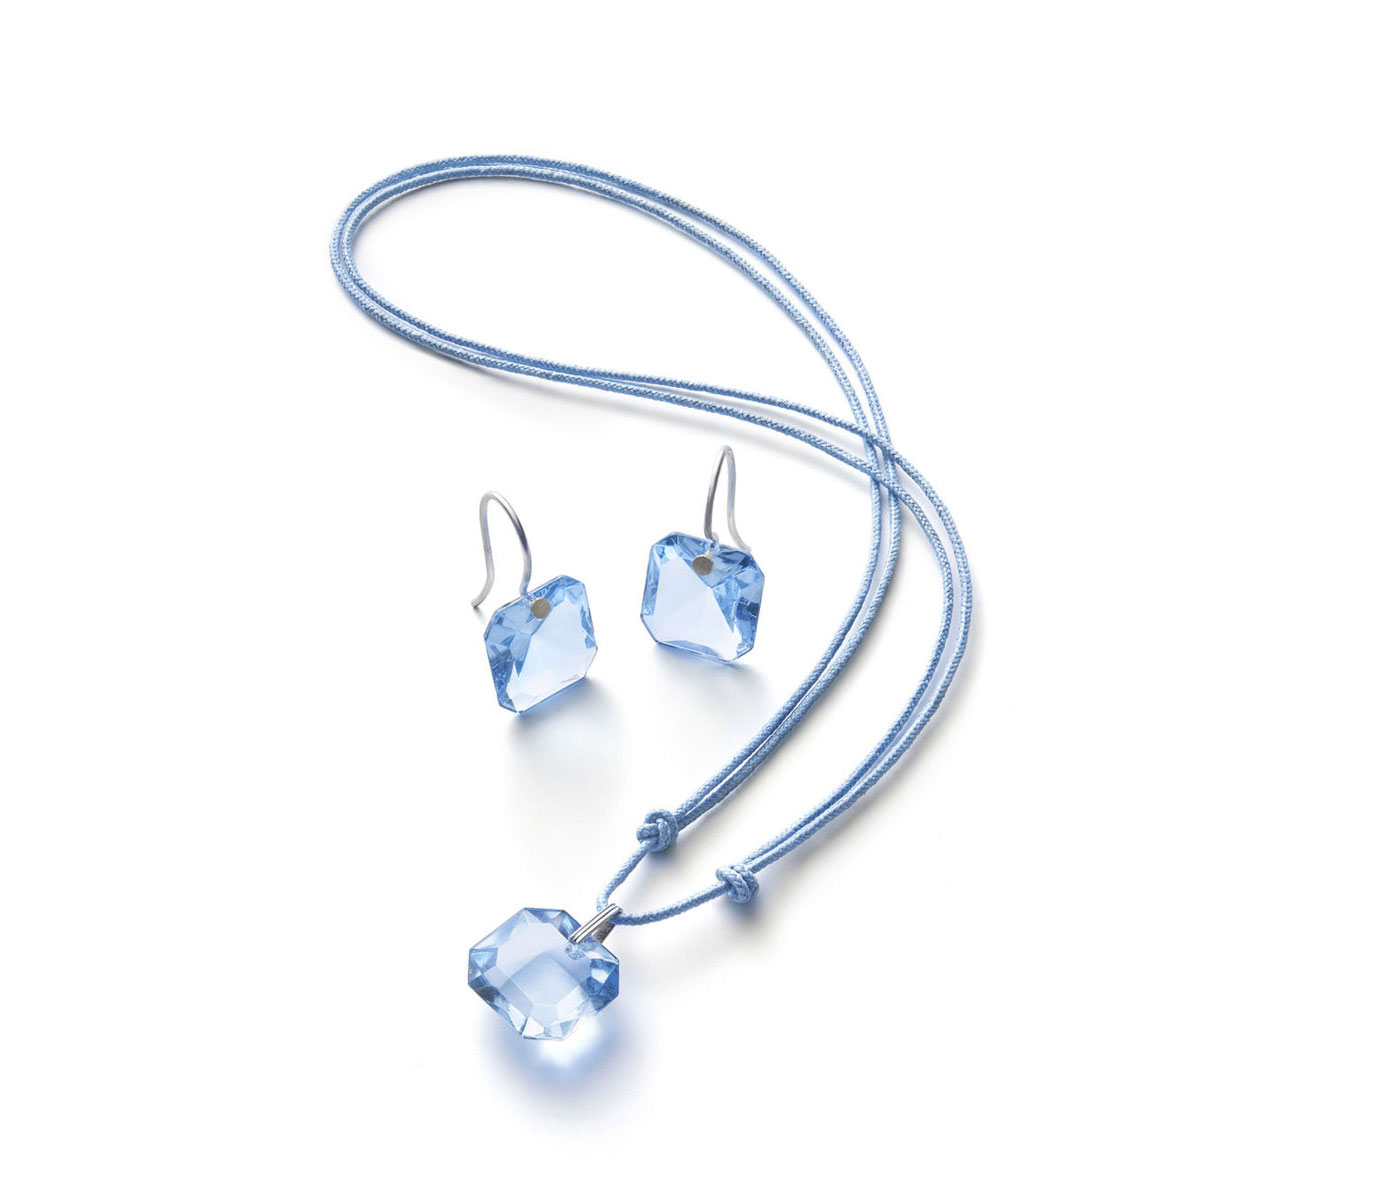 Baccarat Crystal Marie-Helene De Taillac Pendant Necklace Sterling Silver Light Blue